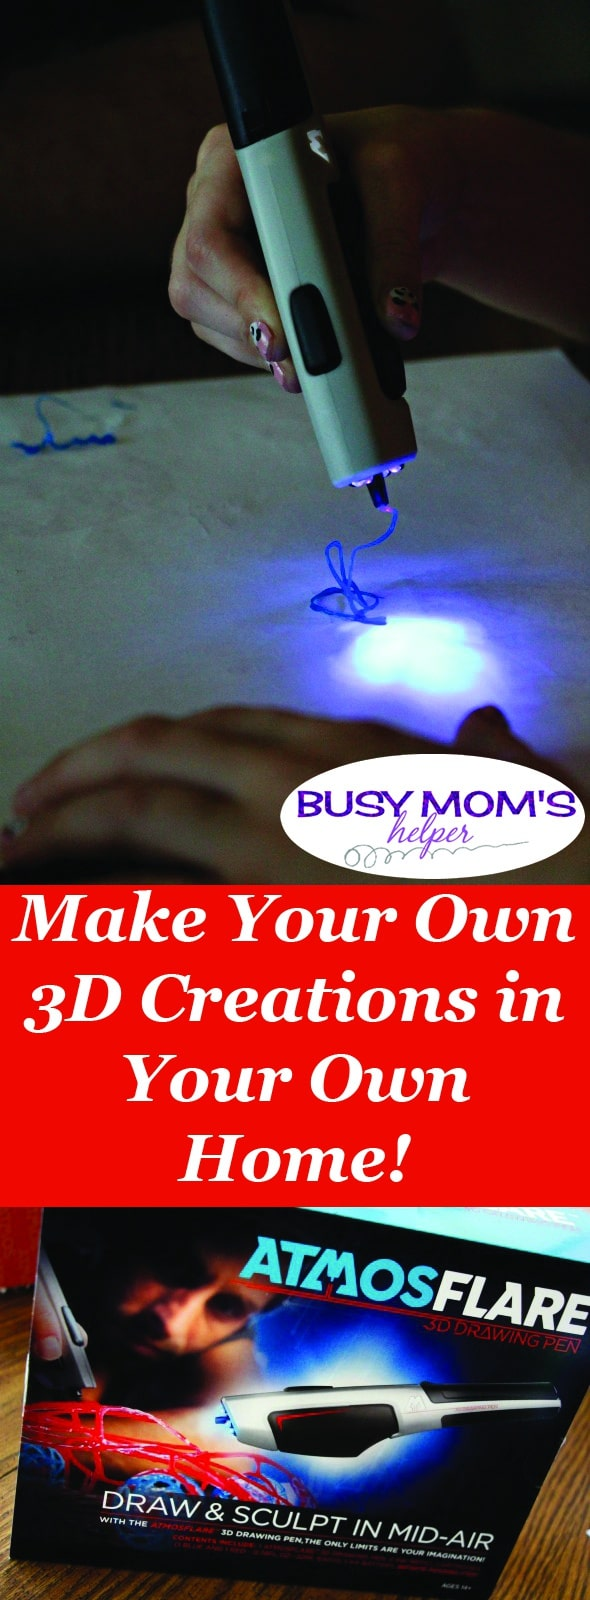 Now you can do 3D Printing in Your Own Home! #ad #3DPen #FunWith3D